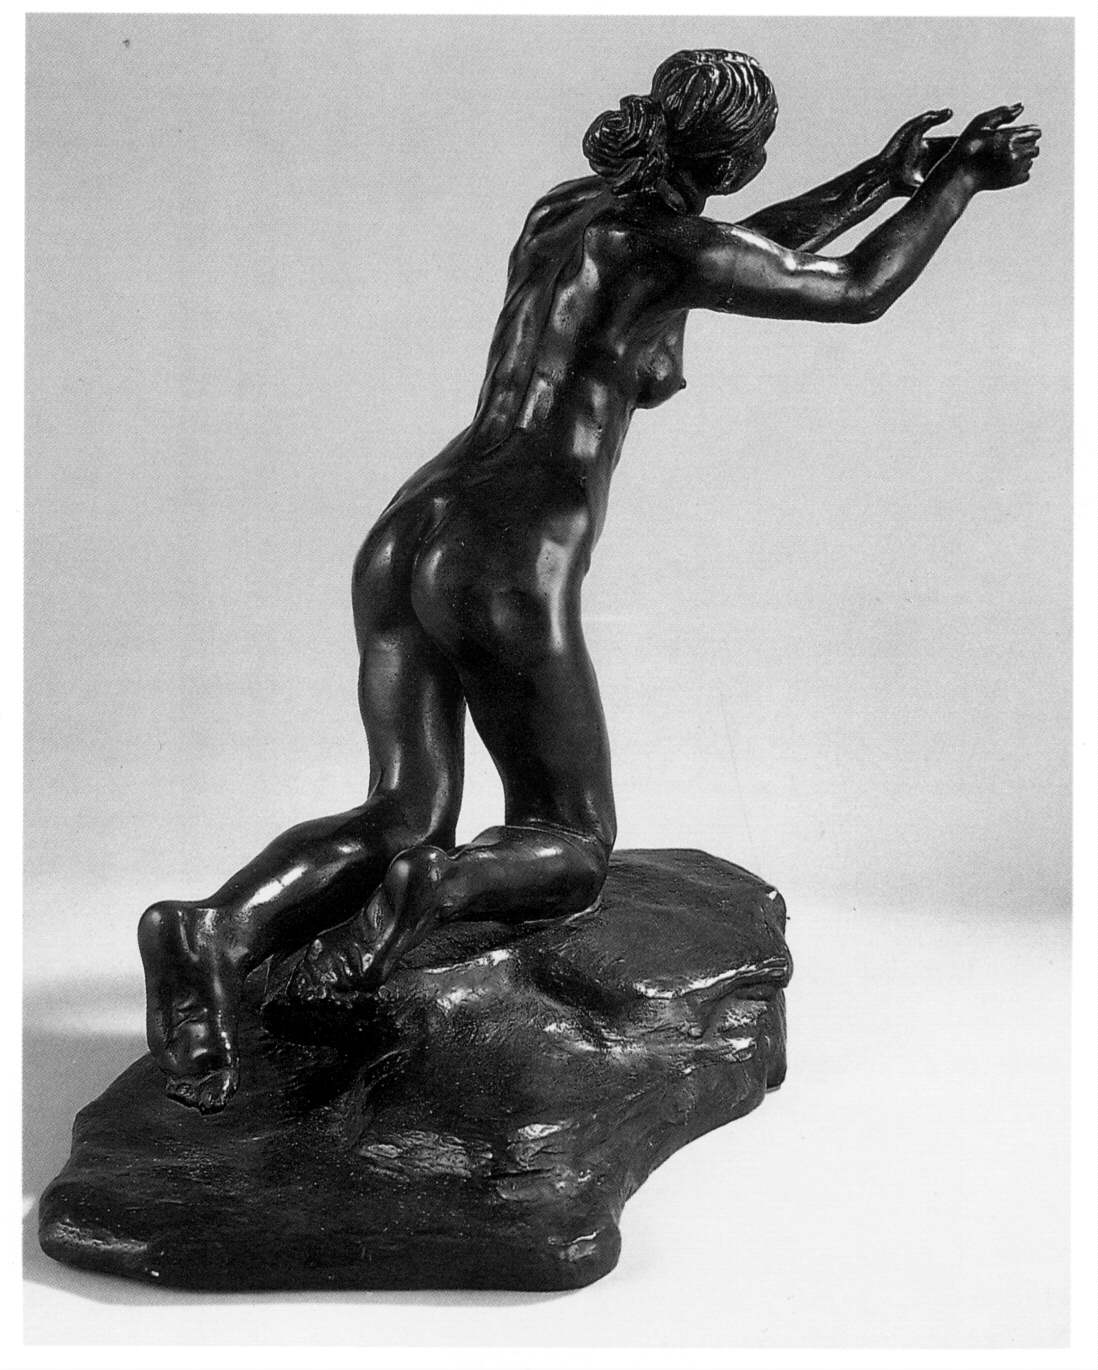 Camille Claudel: Recreation: Rodin And Camille Claudel